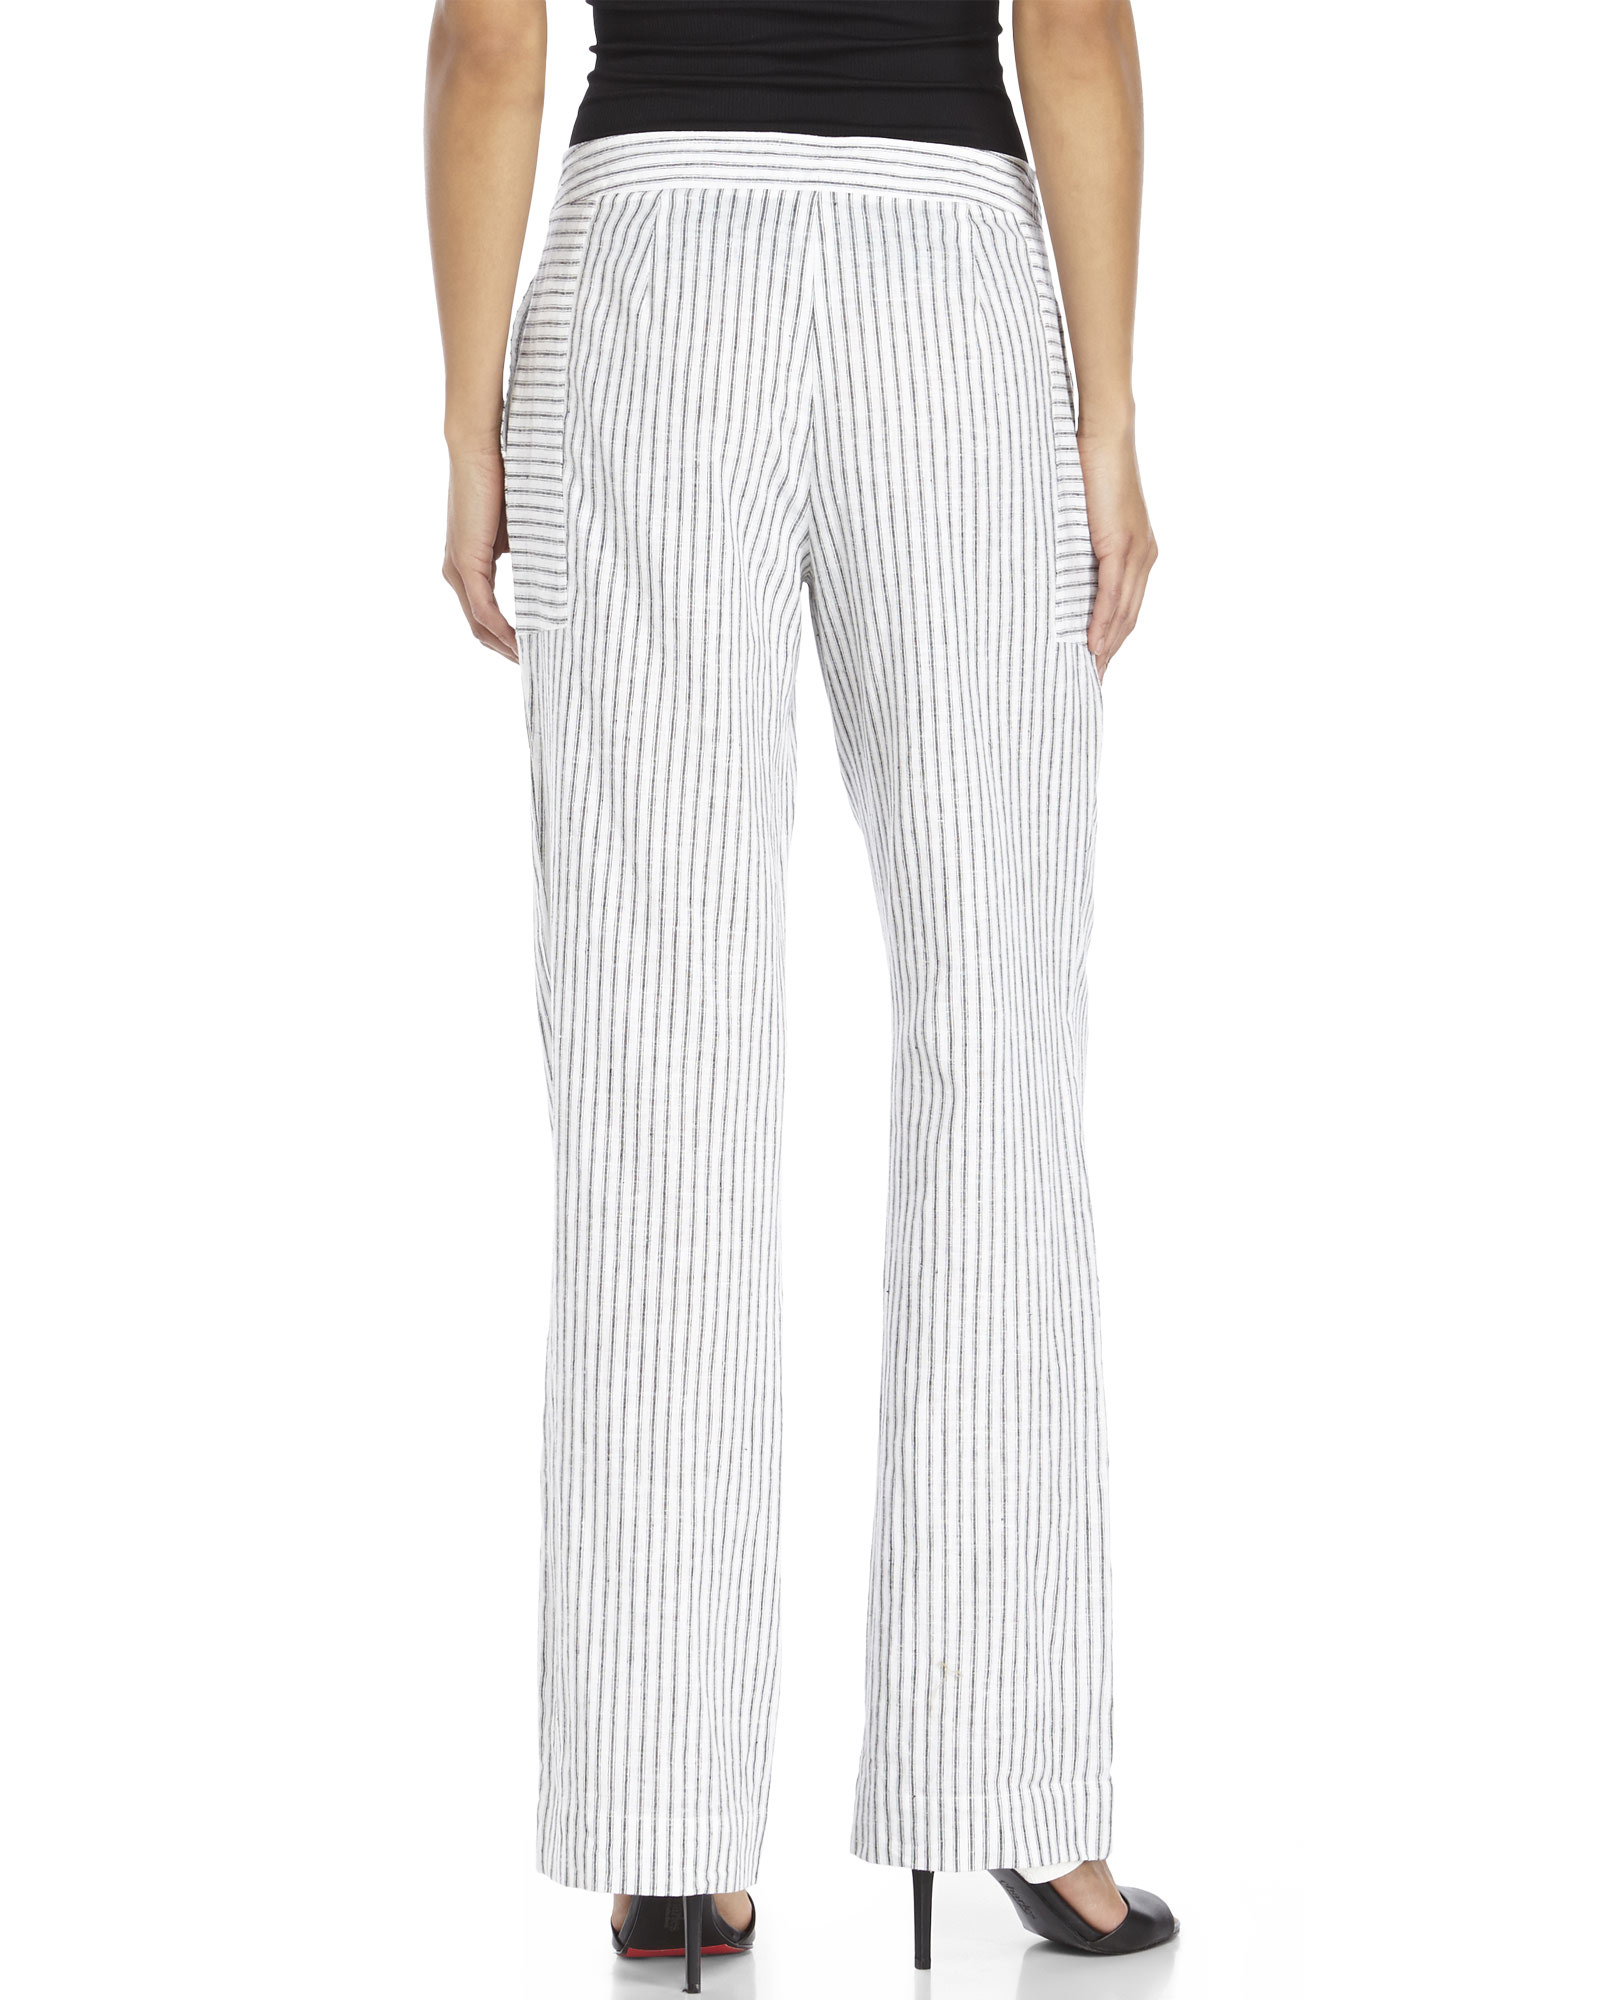 juniors white linen pants - Pi Pants